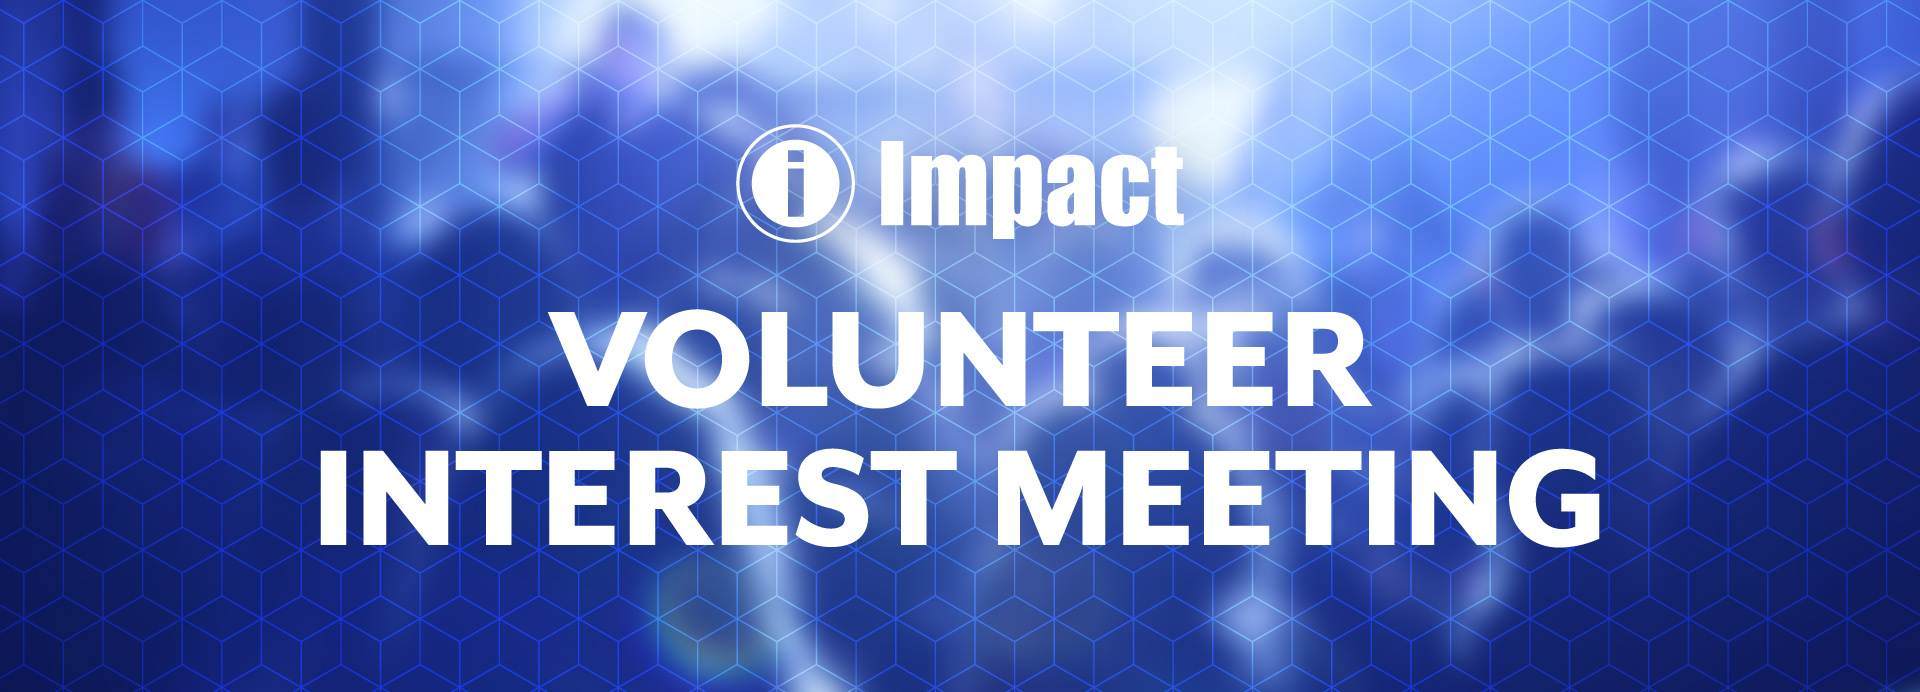 Impact Volunteer Interest Meeting